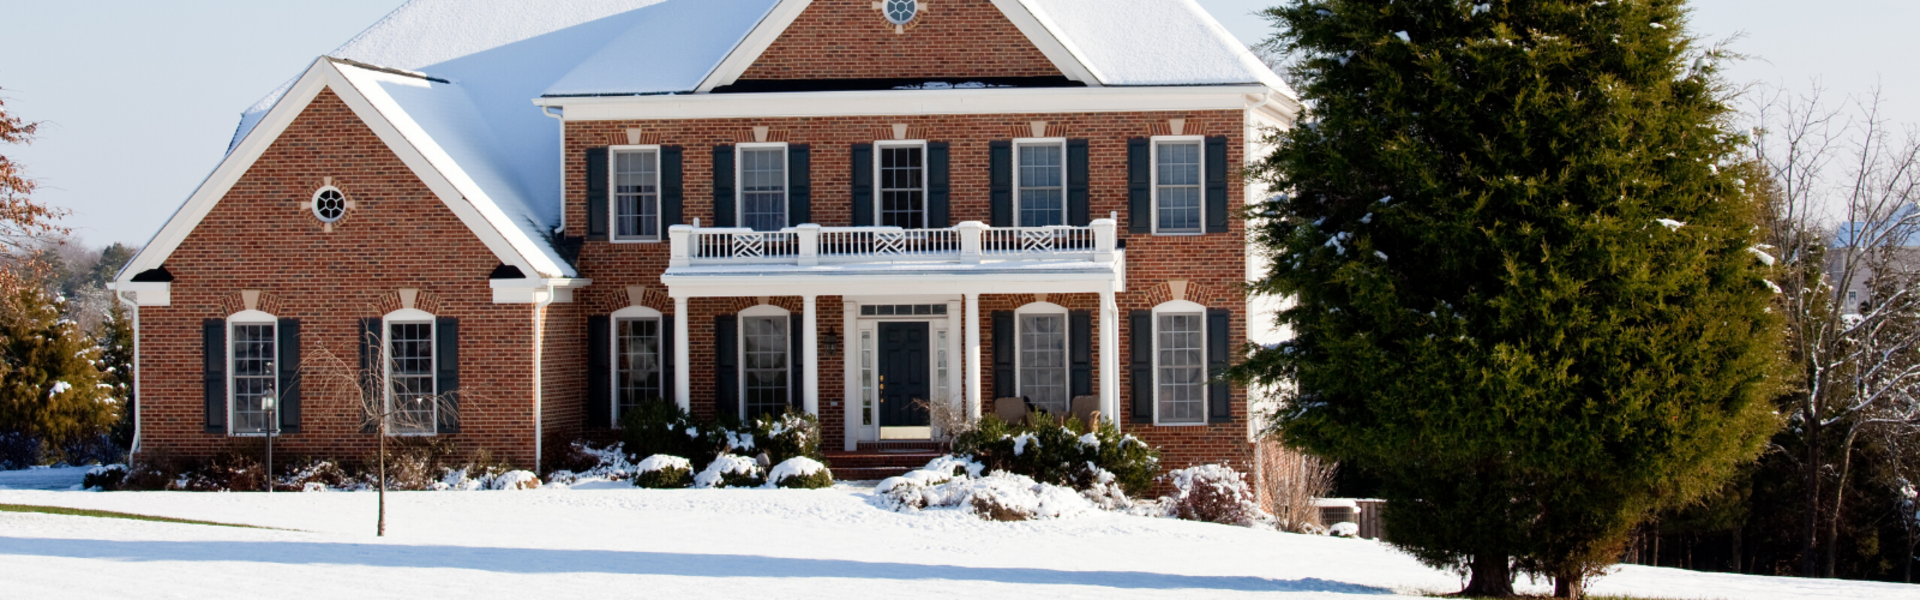 Keller Williams Newtown's Open Houses January 4th – 5th